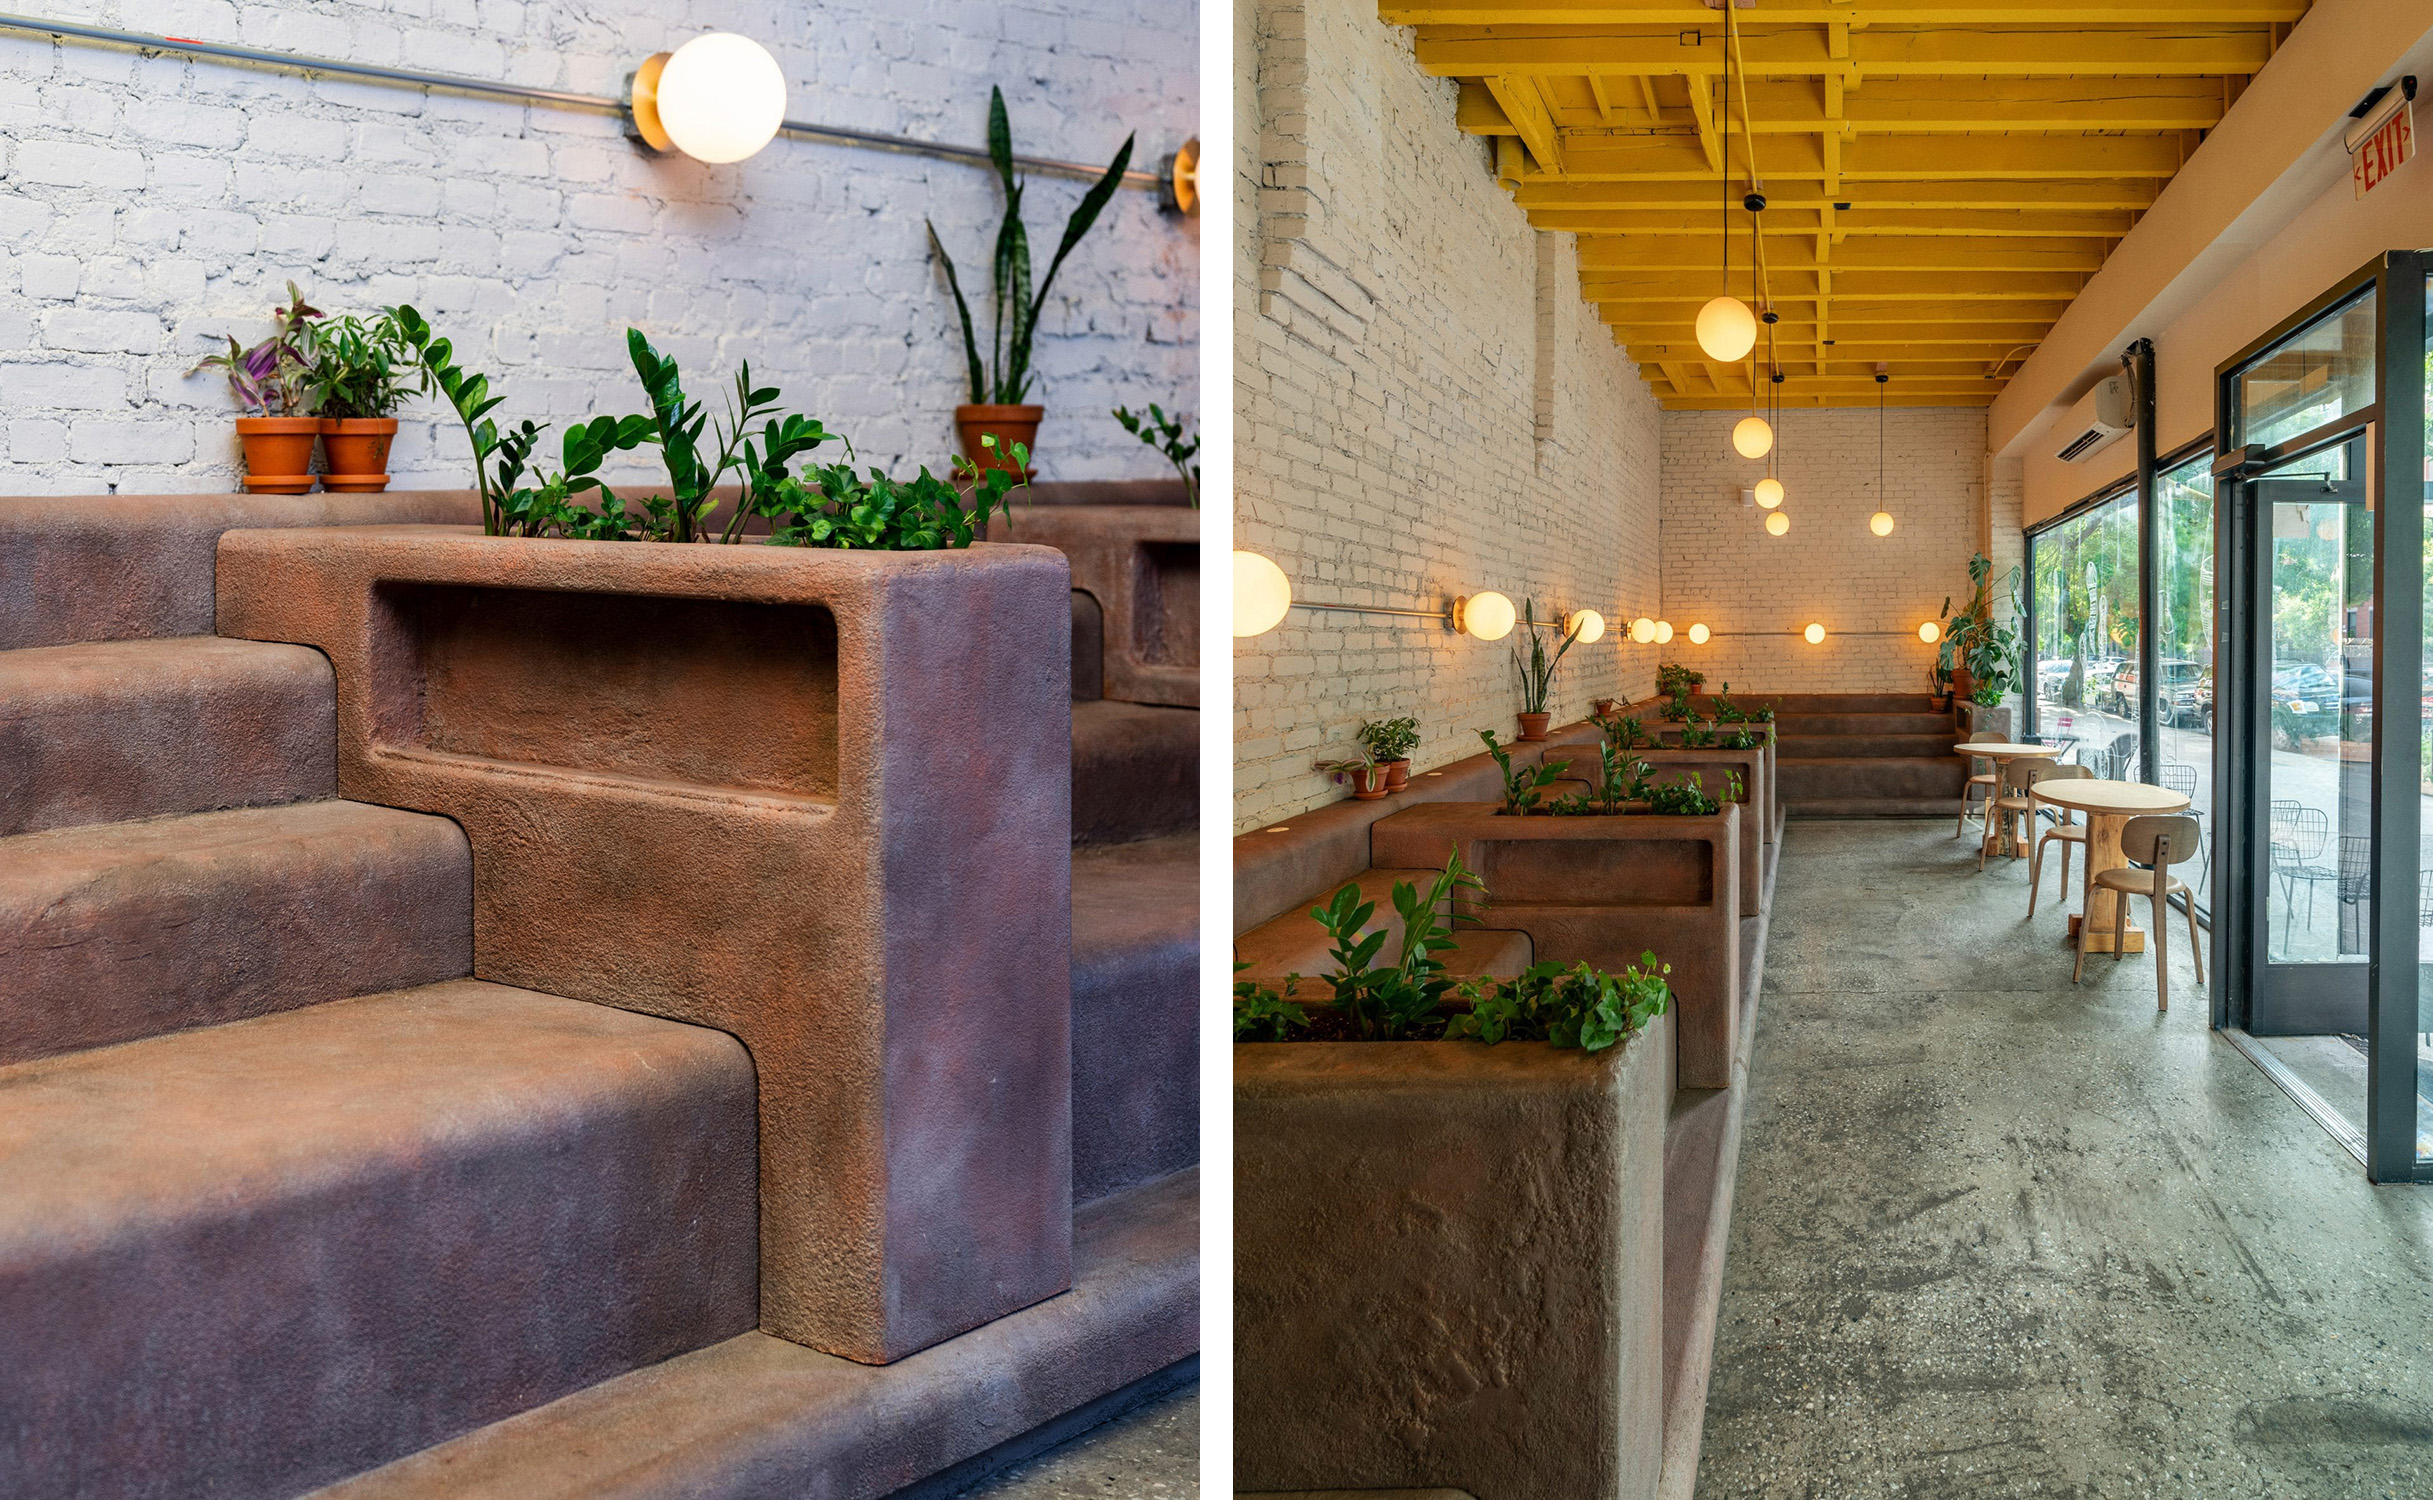 Stepped seating mimics the iconic stoops of the city's Brownstones